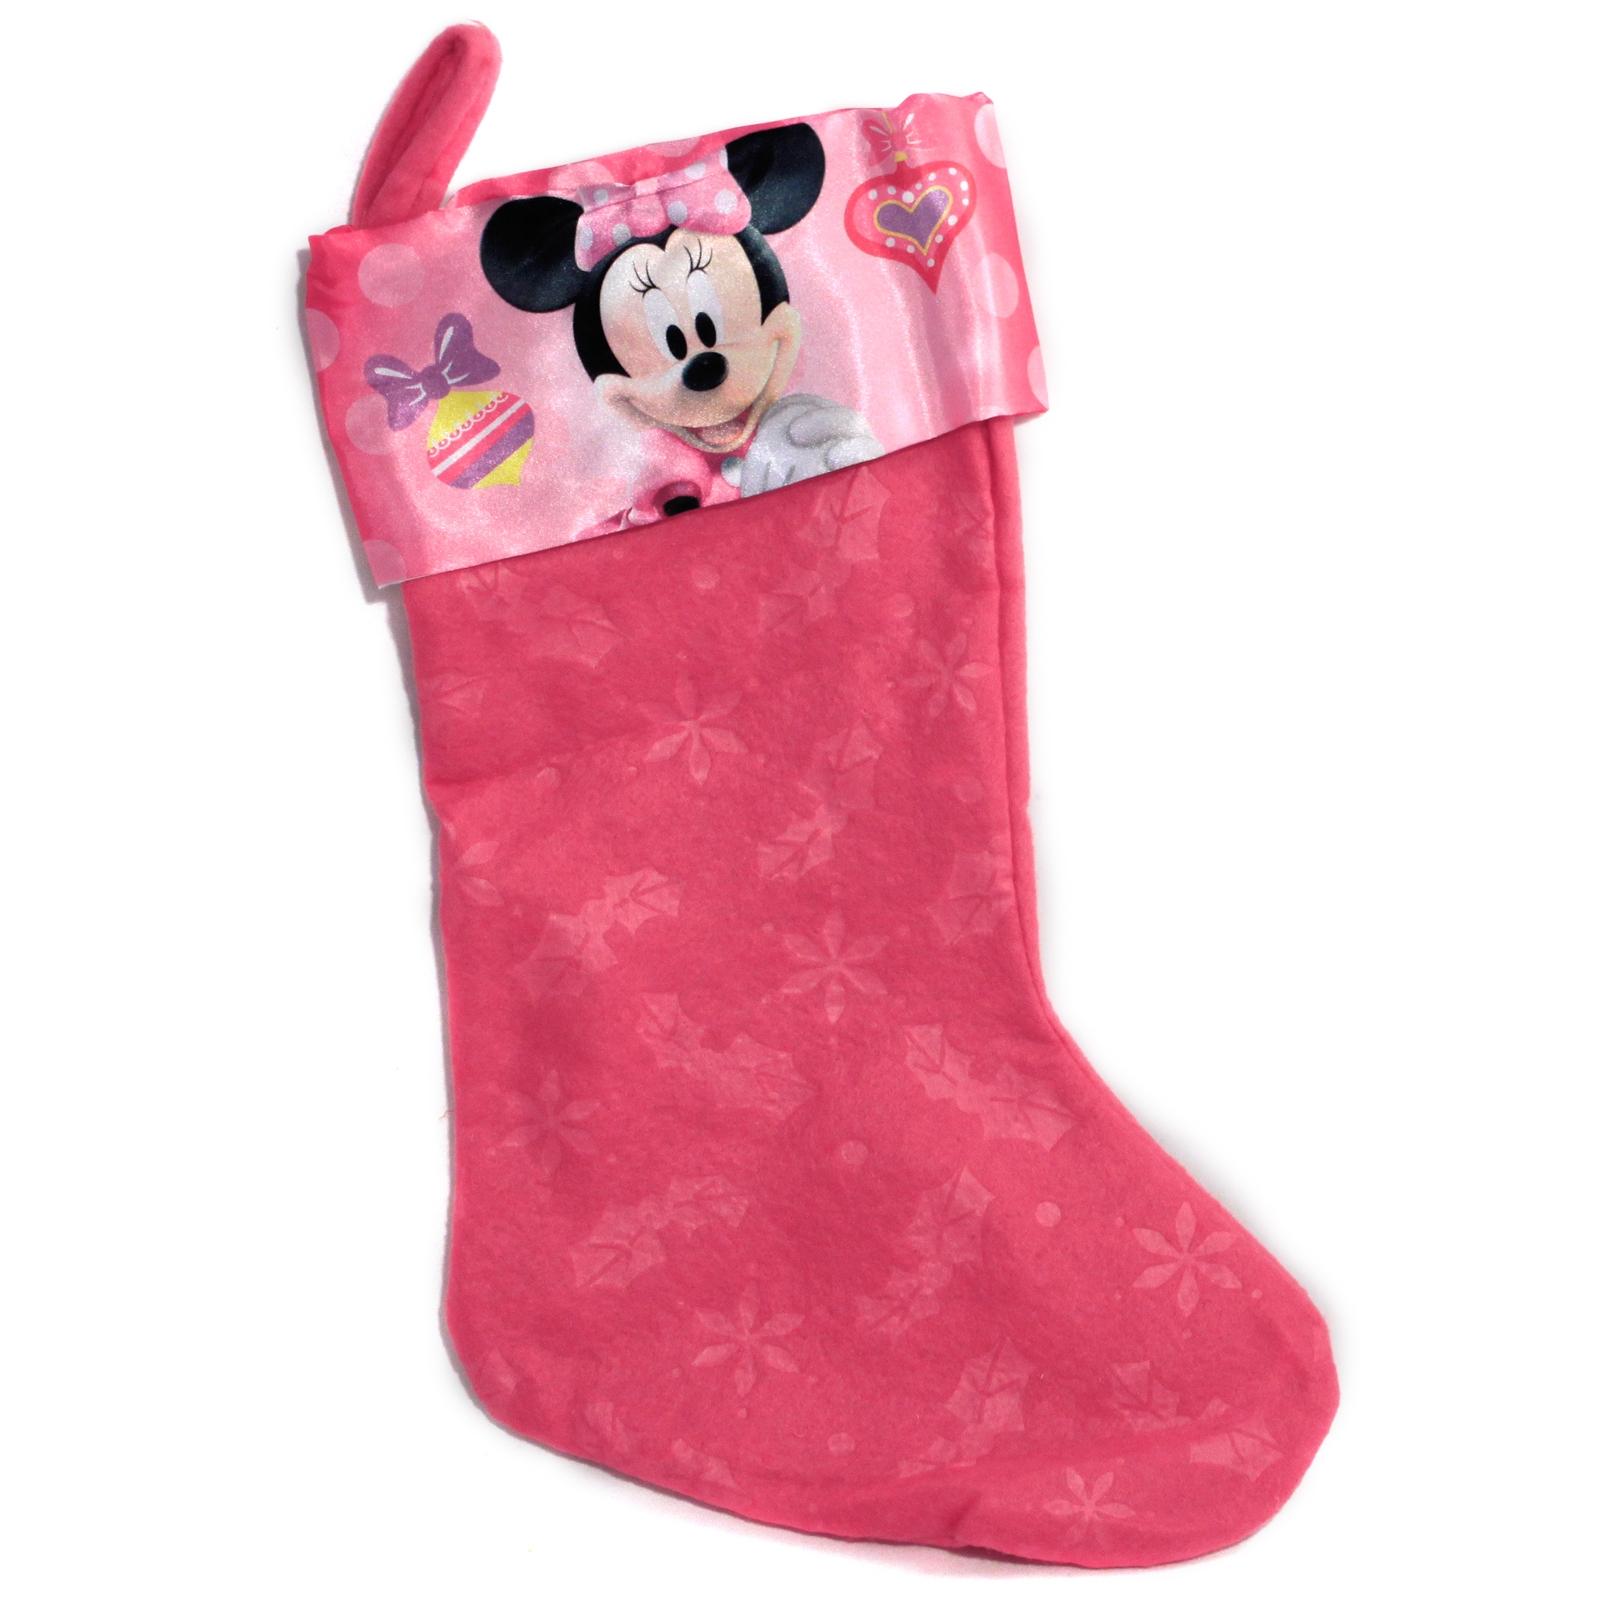 Disney Minnie Mouse Childrens 18 Inch Felt Stocking at Sears.com